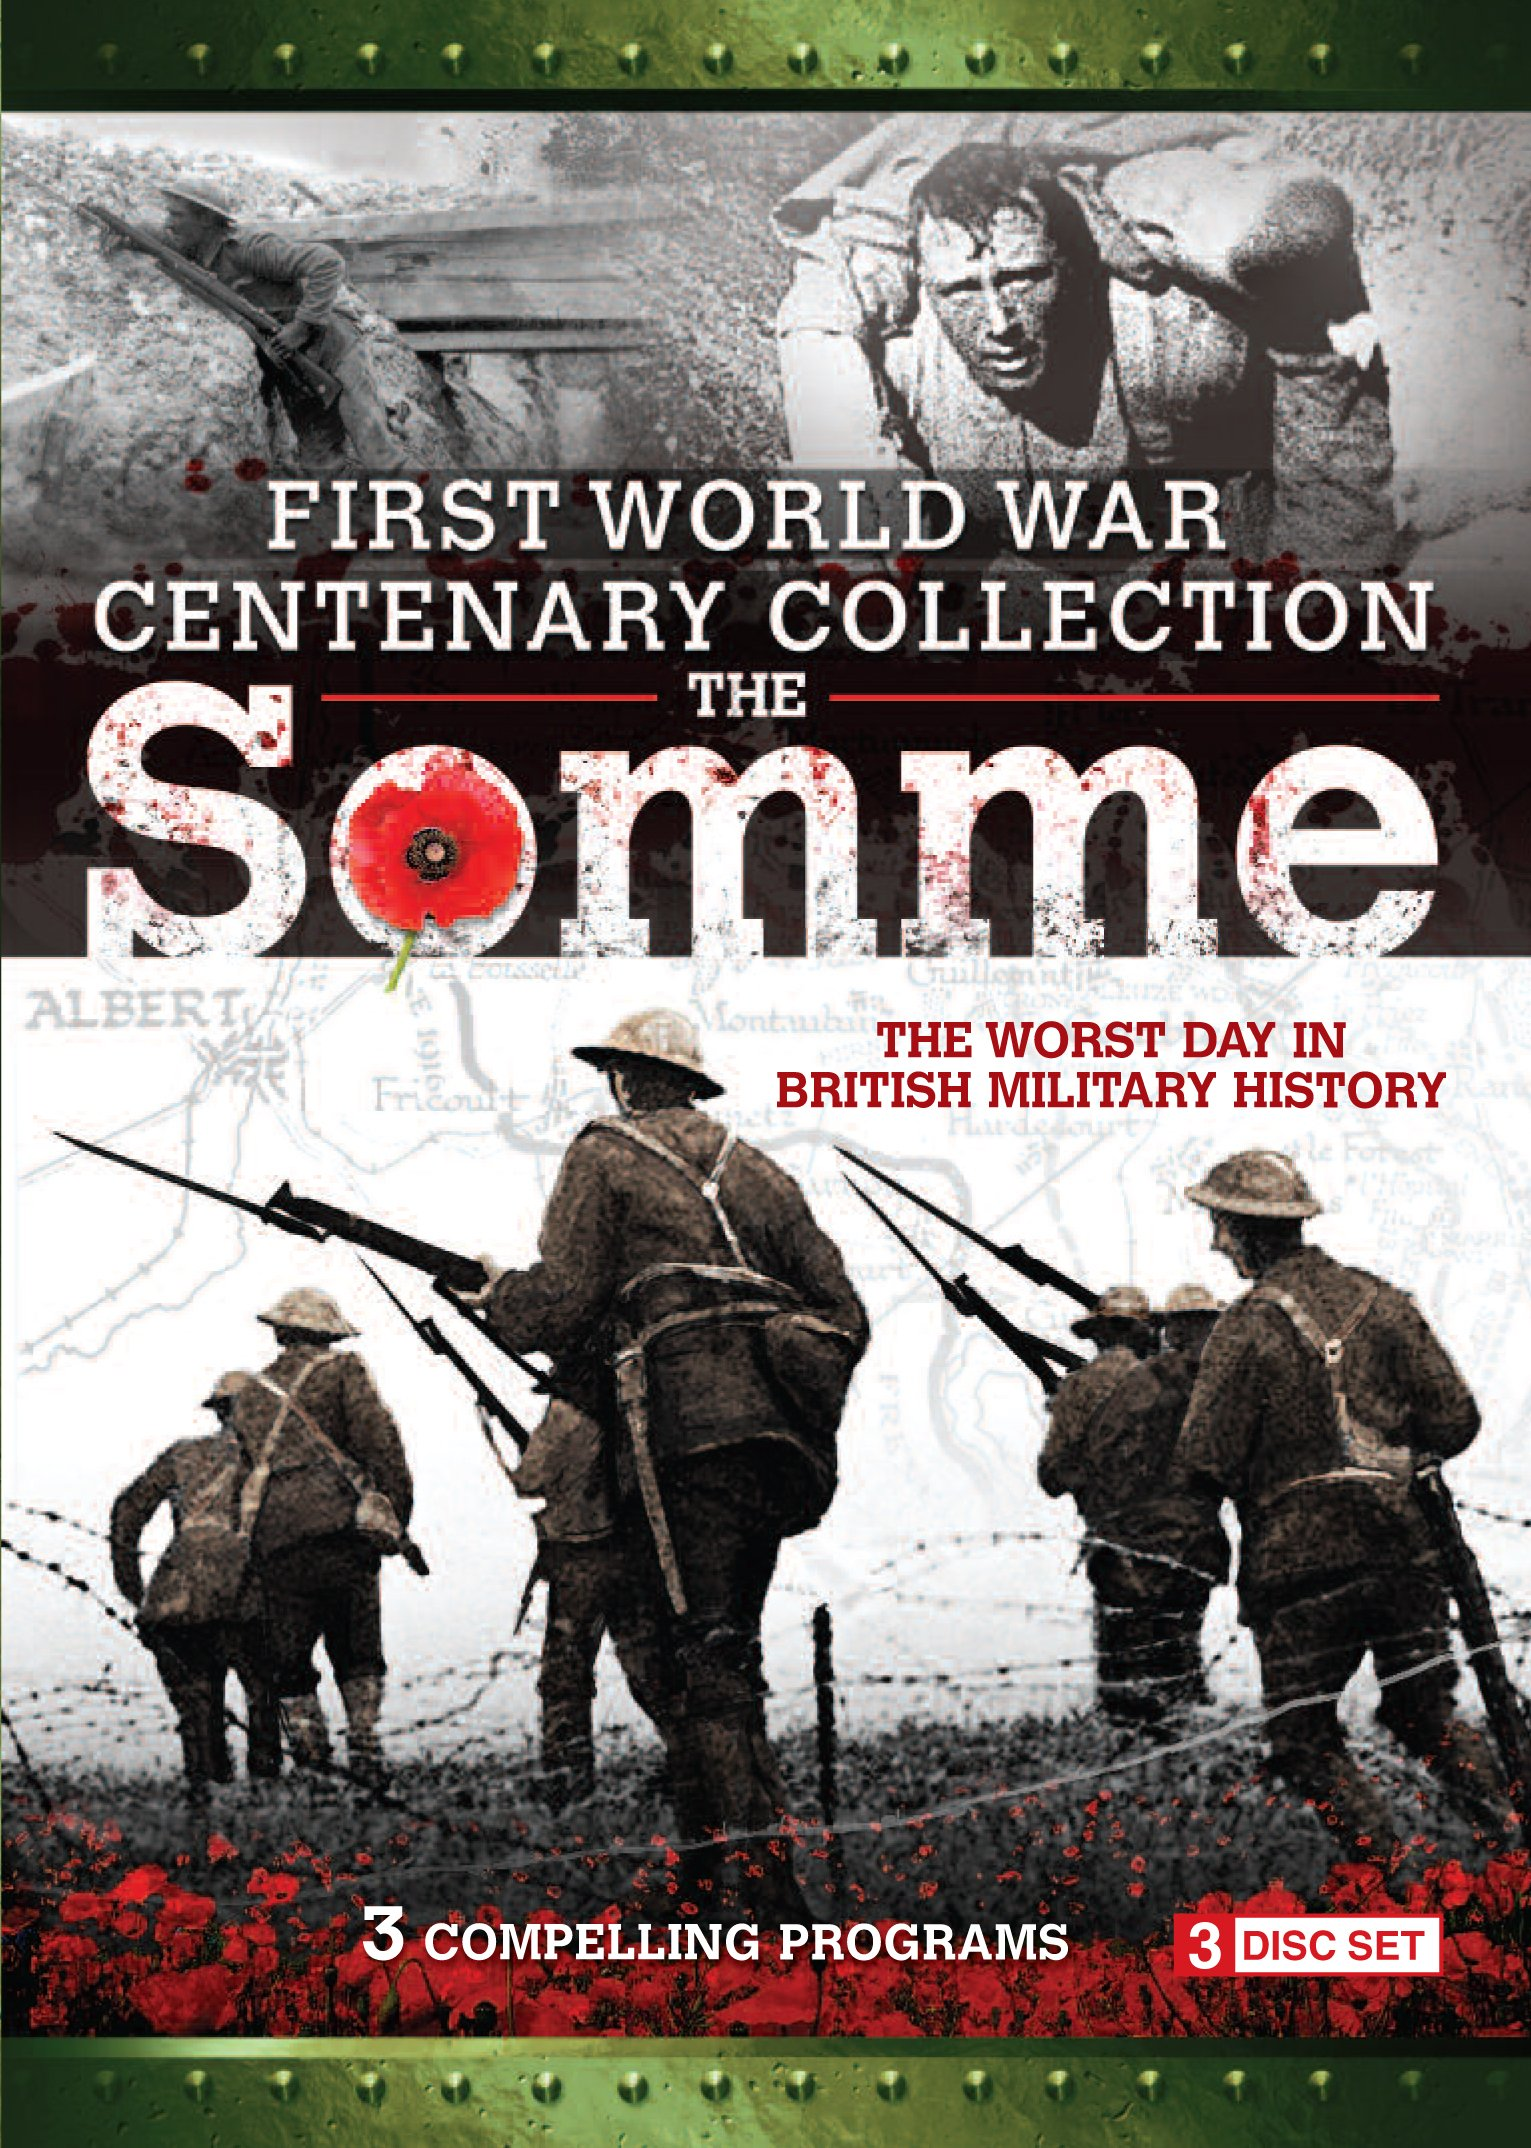 First World War Centenary Collection: The Somme